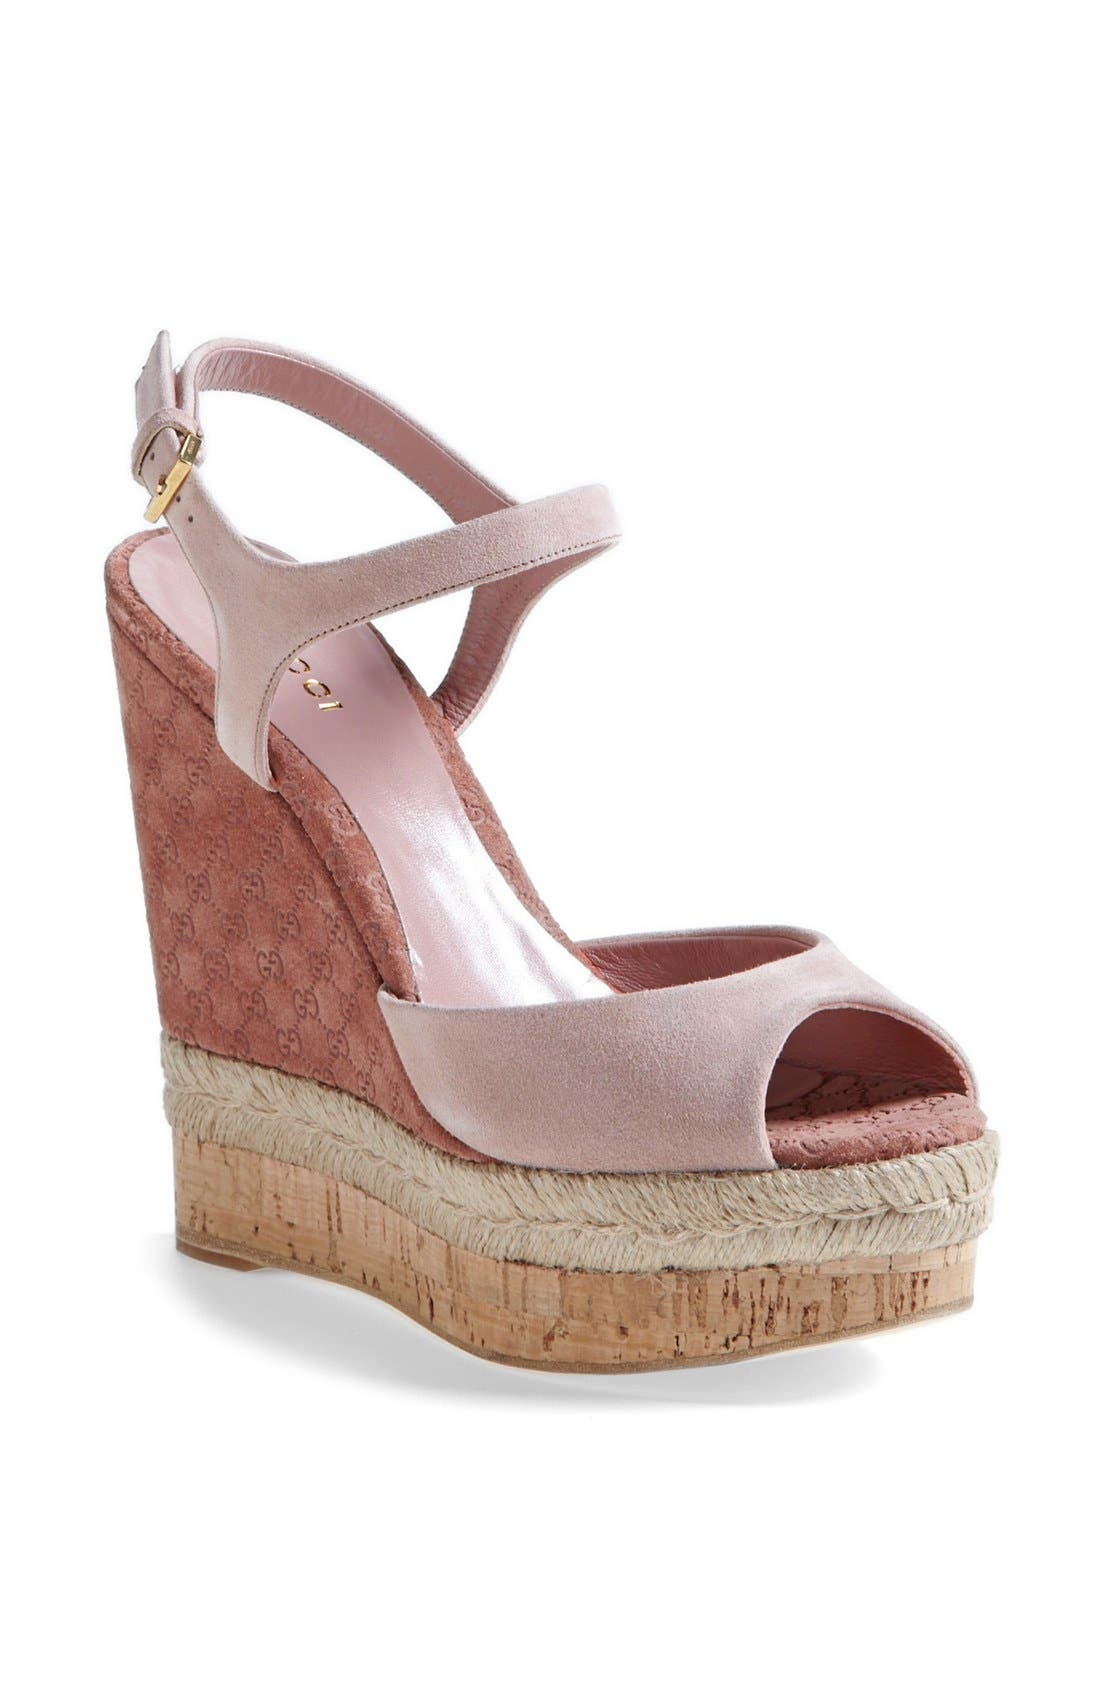 Main Image - Gucci 'Hollie' Wedge Sandal (Women)